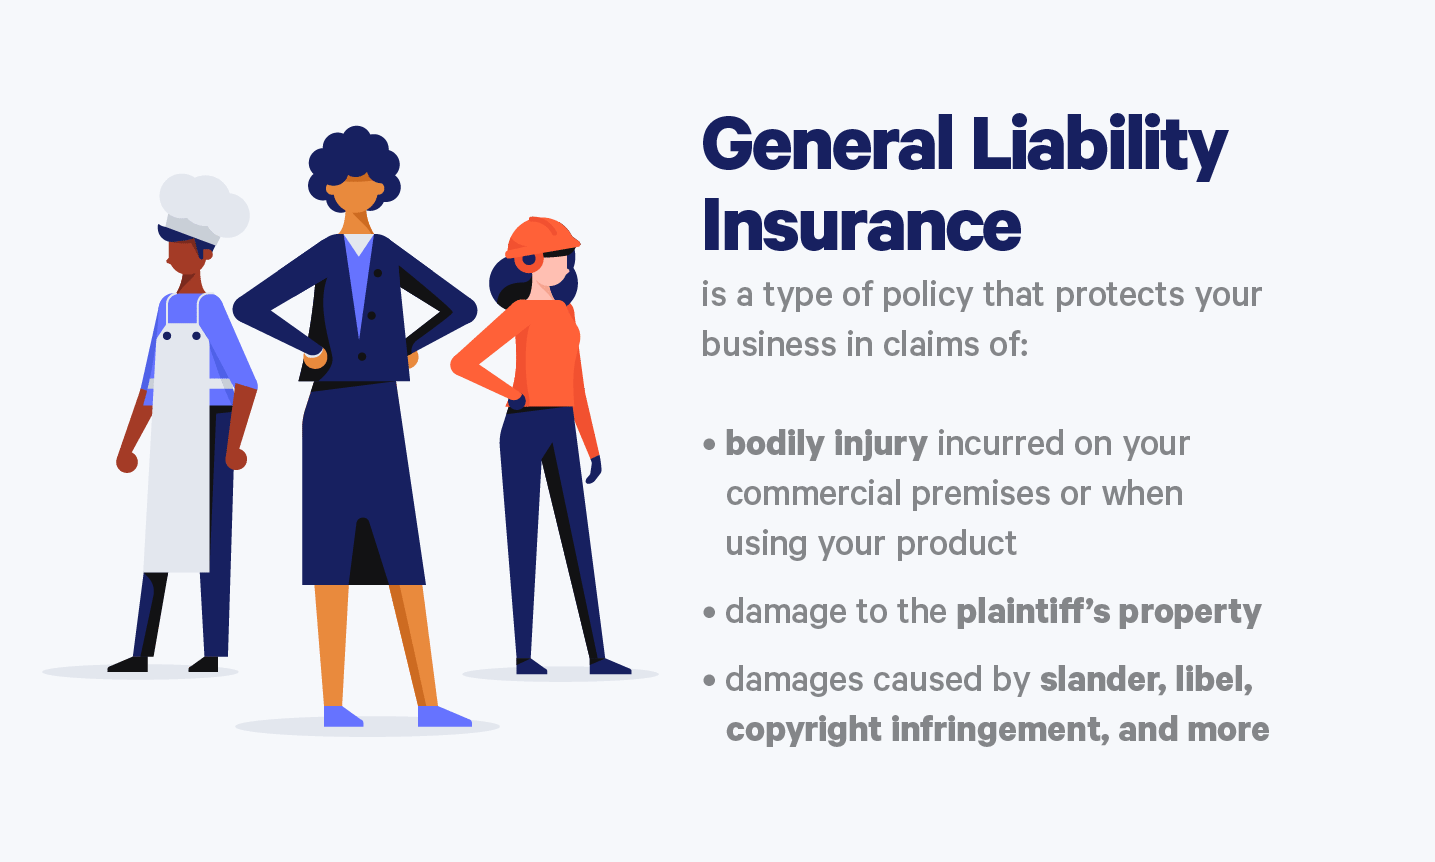 General Liability Insurance Policy